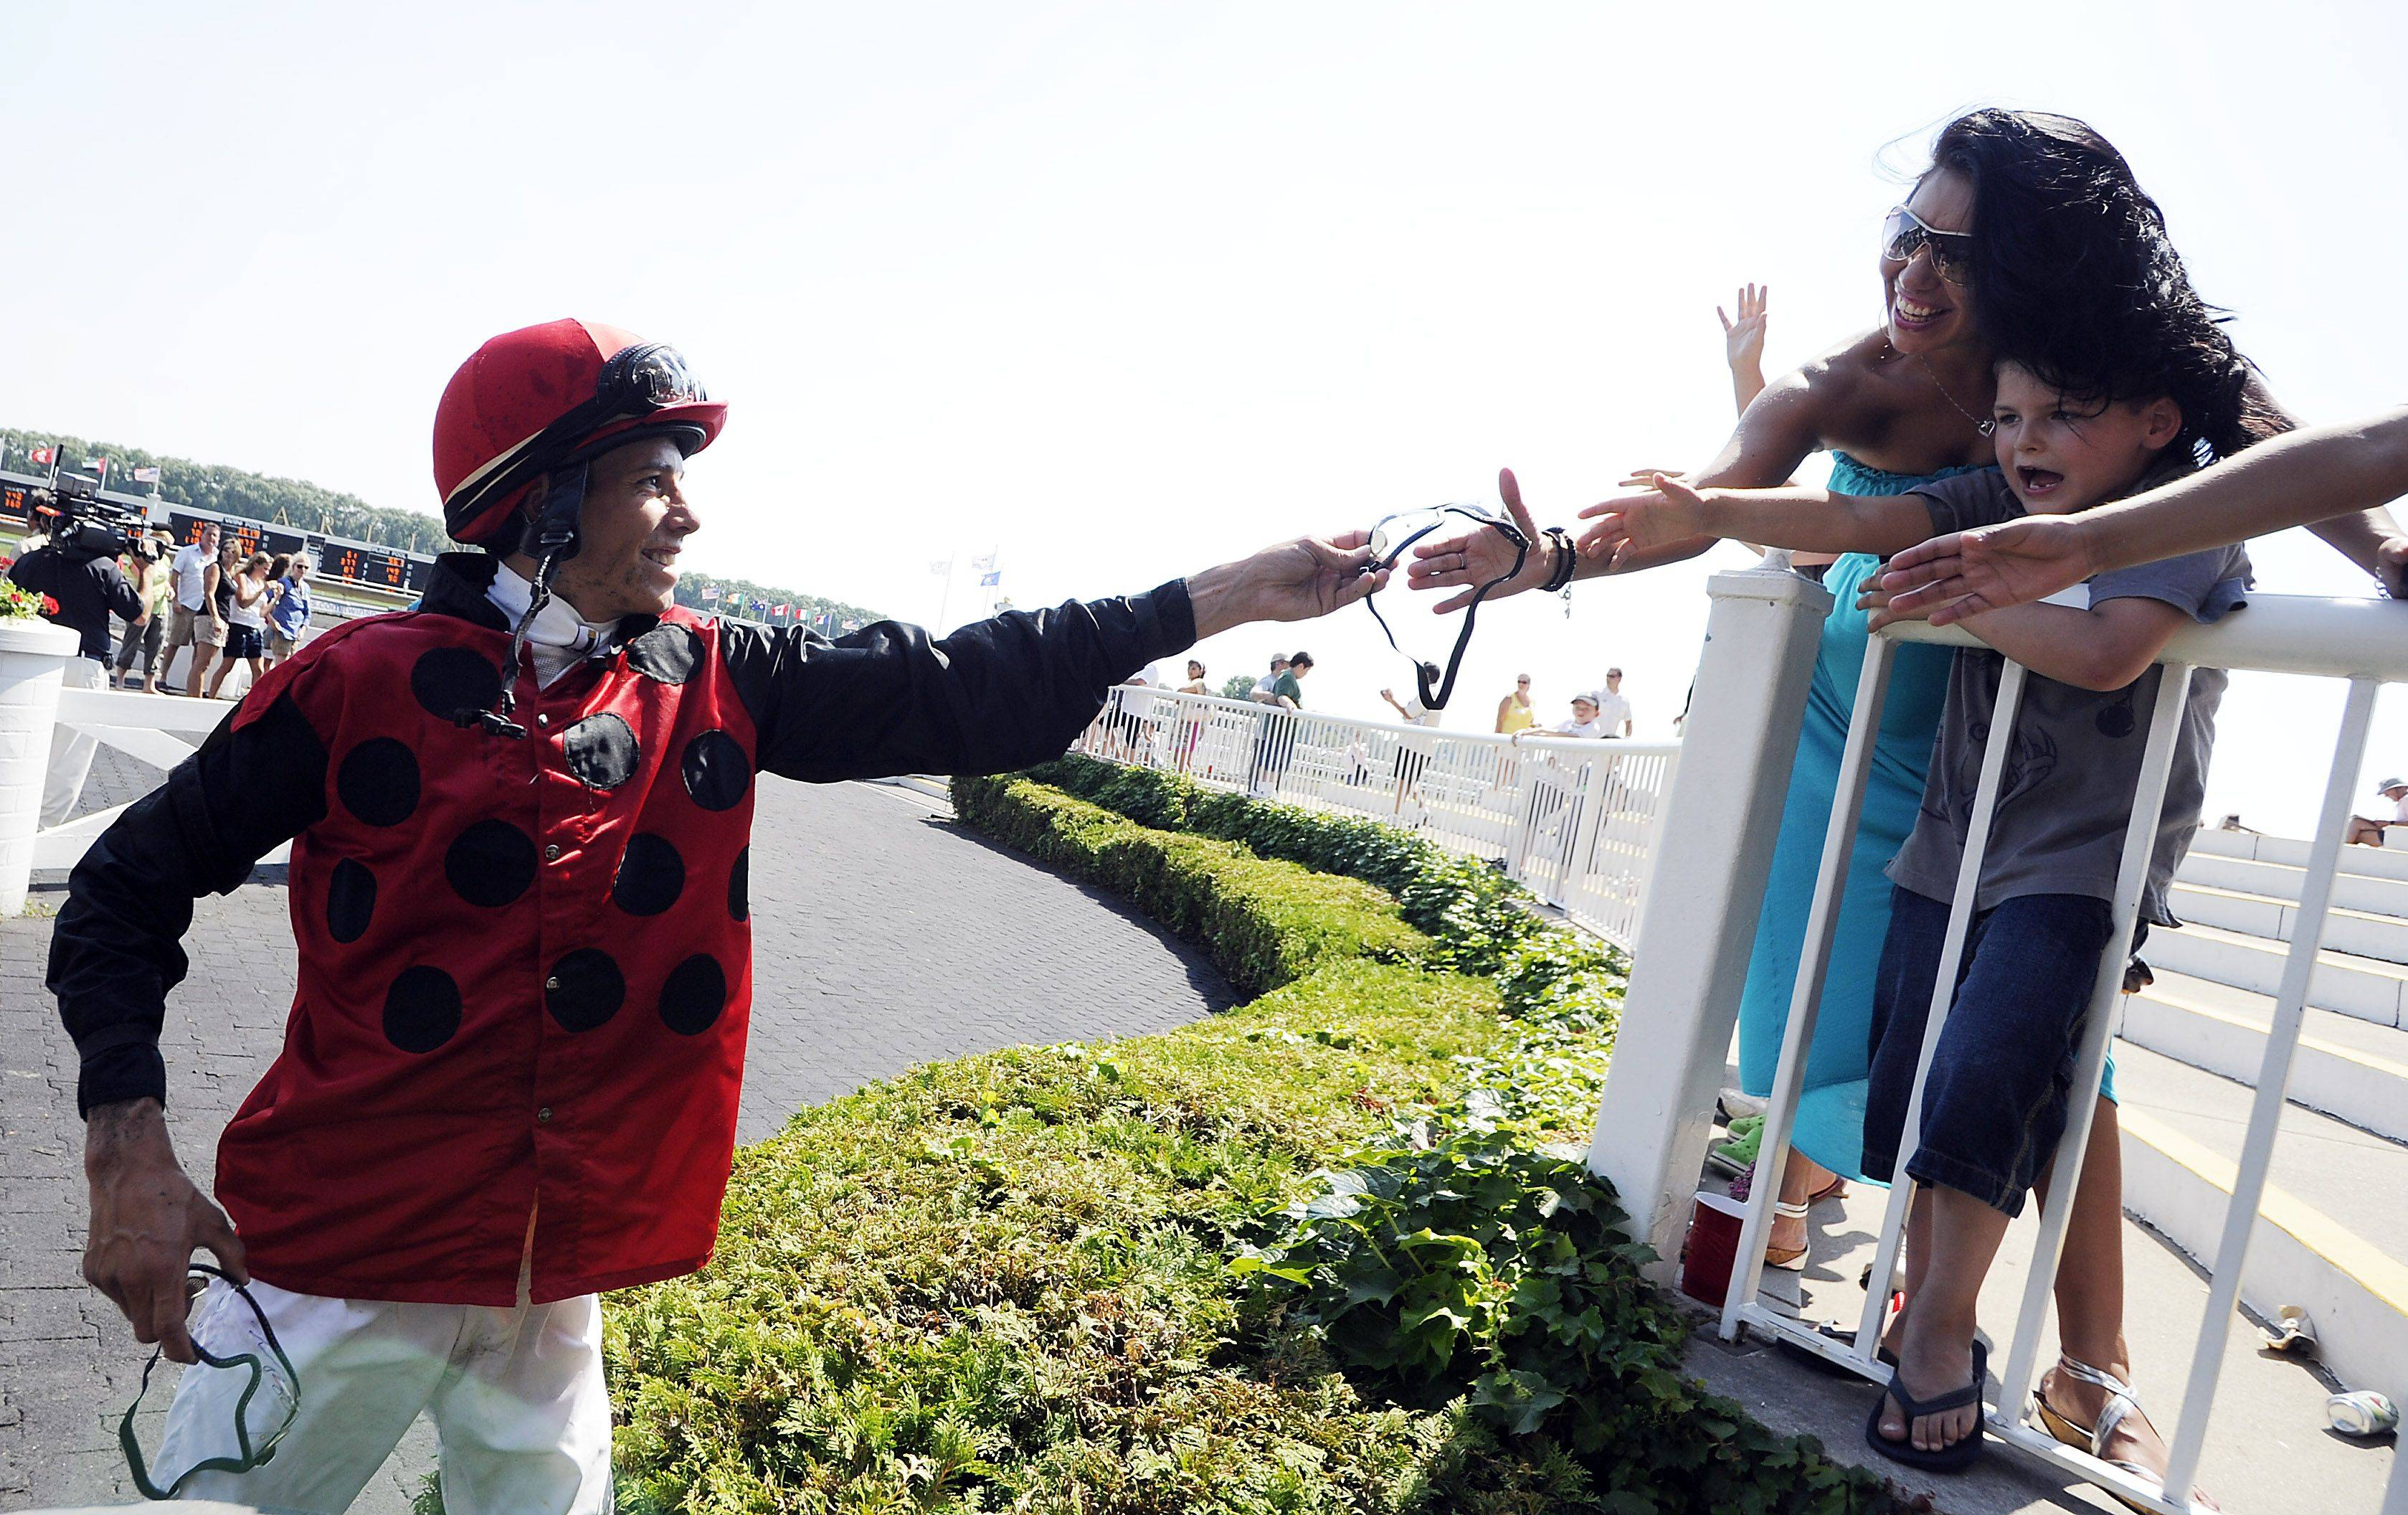 Jockey Tanner Riggs hands his goggles to Steven Horvtha V and his mom Marcie Sanchez of Berwyn after he won the fifth race at the Fiesta in the Park party at Arlington Race course on Sunday.